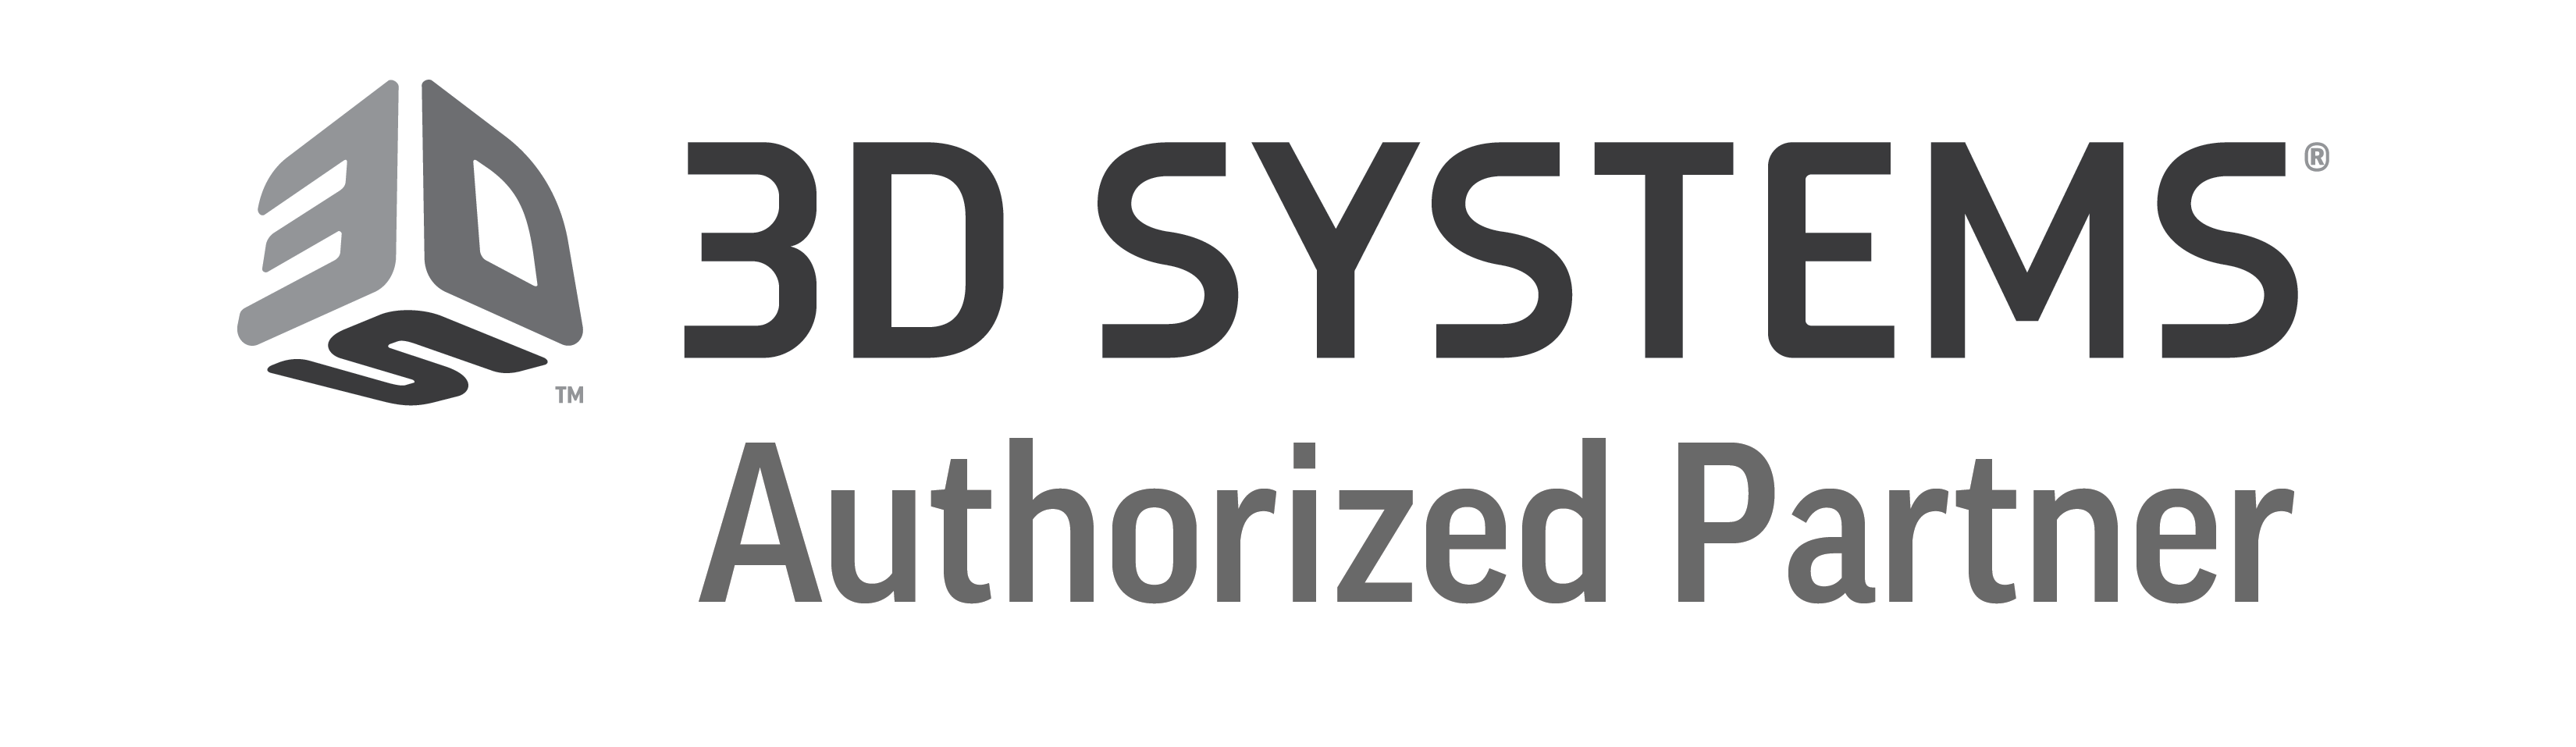 Partner-Logo-Light-3D-Systems-1.png